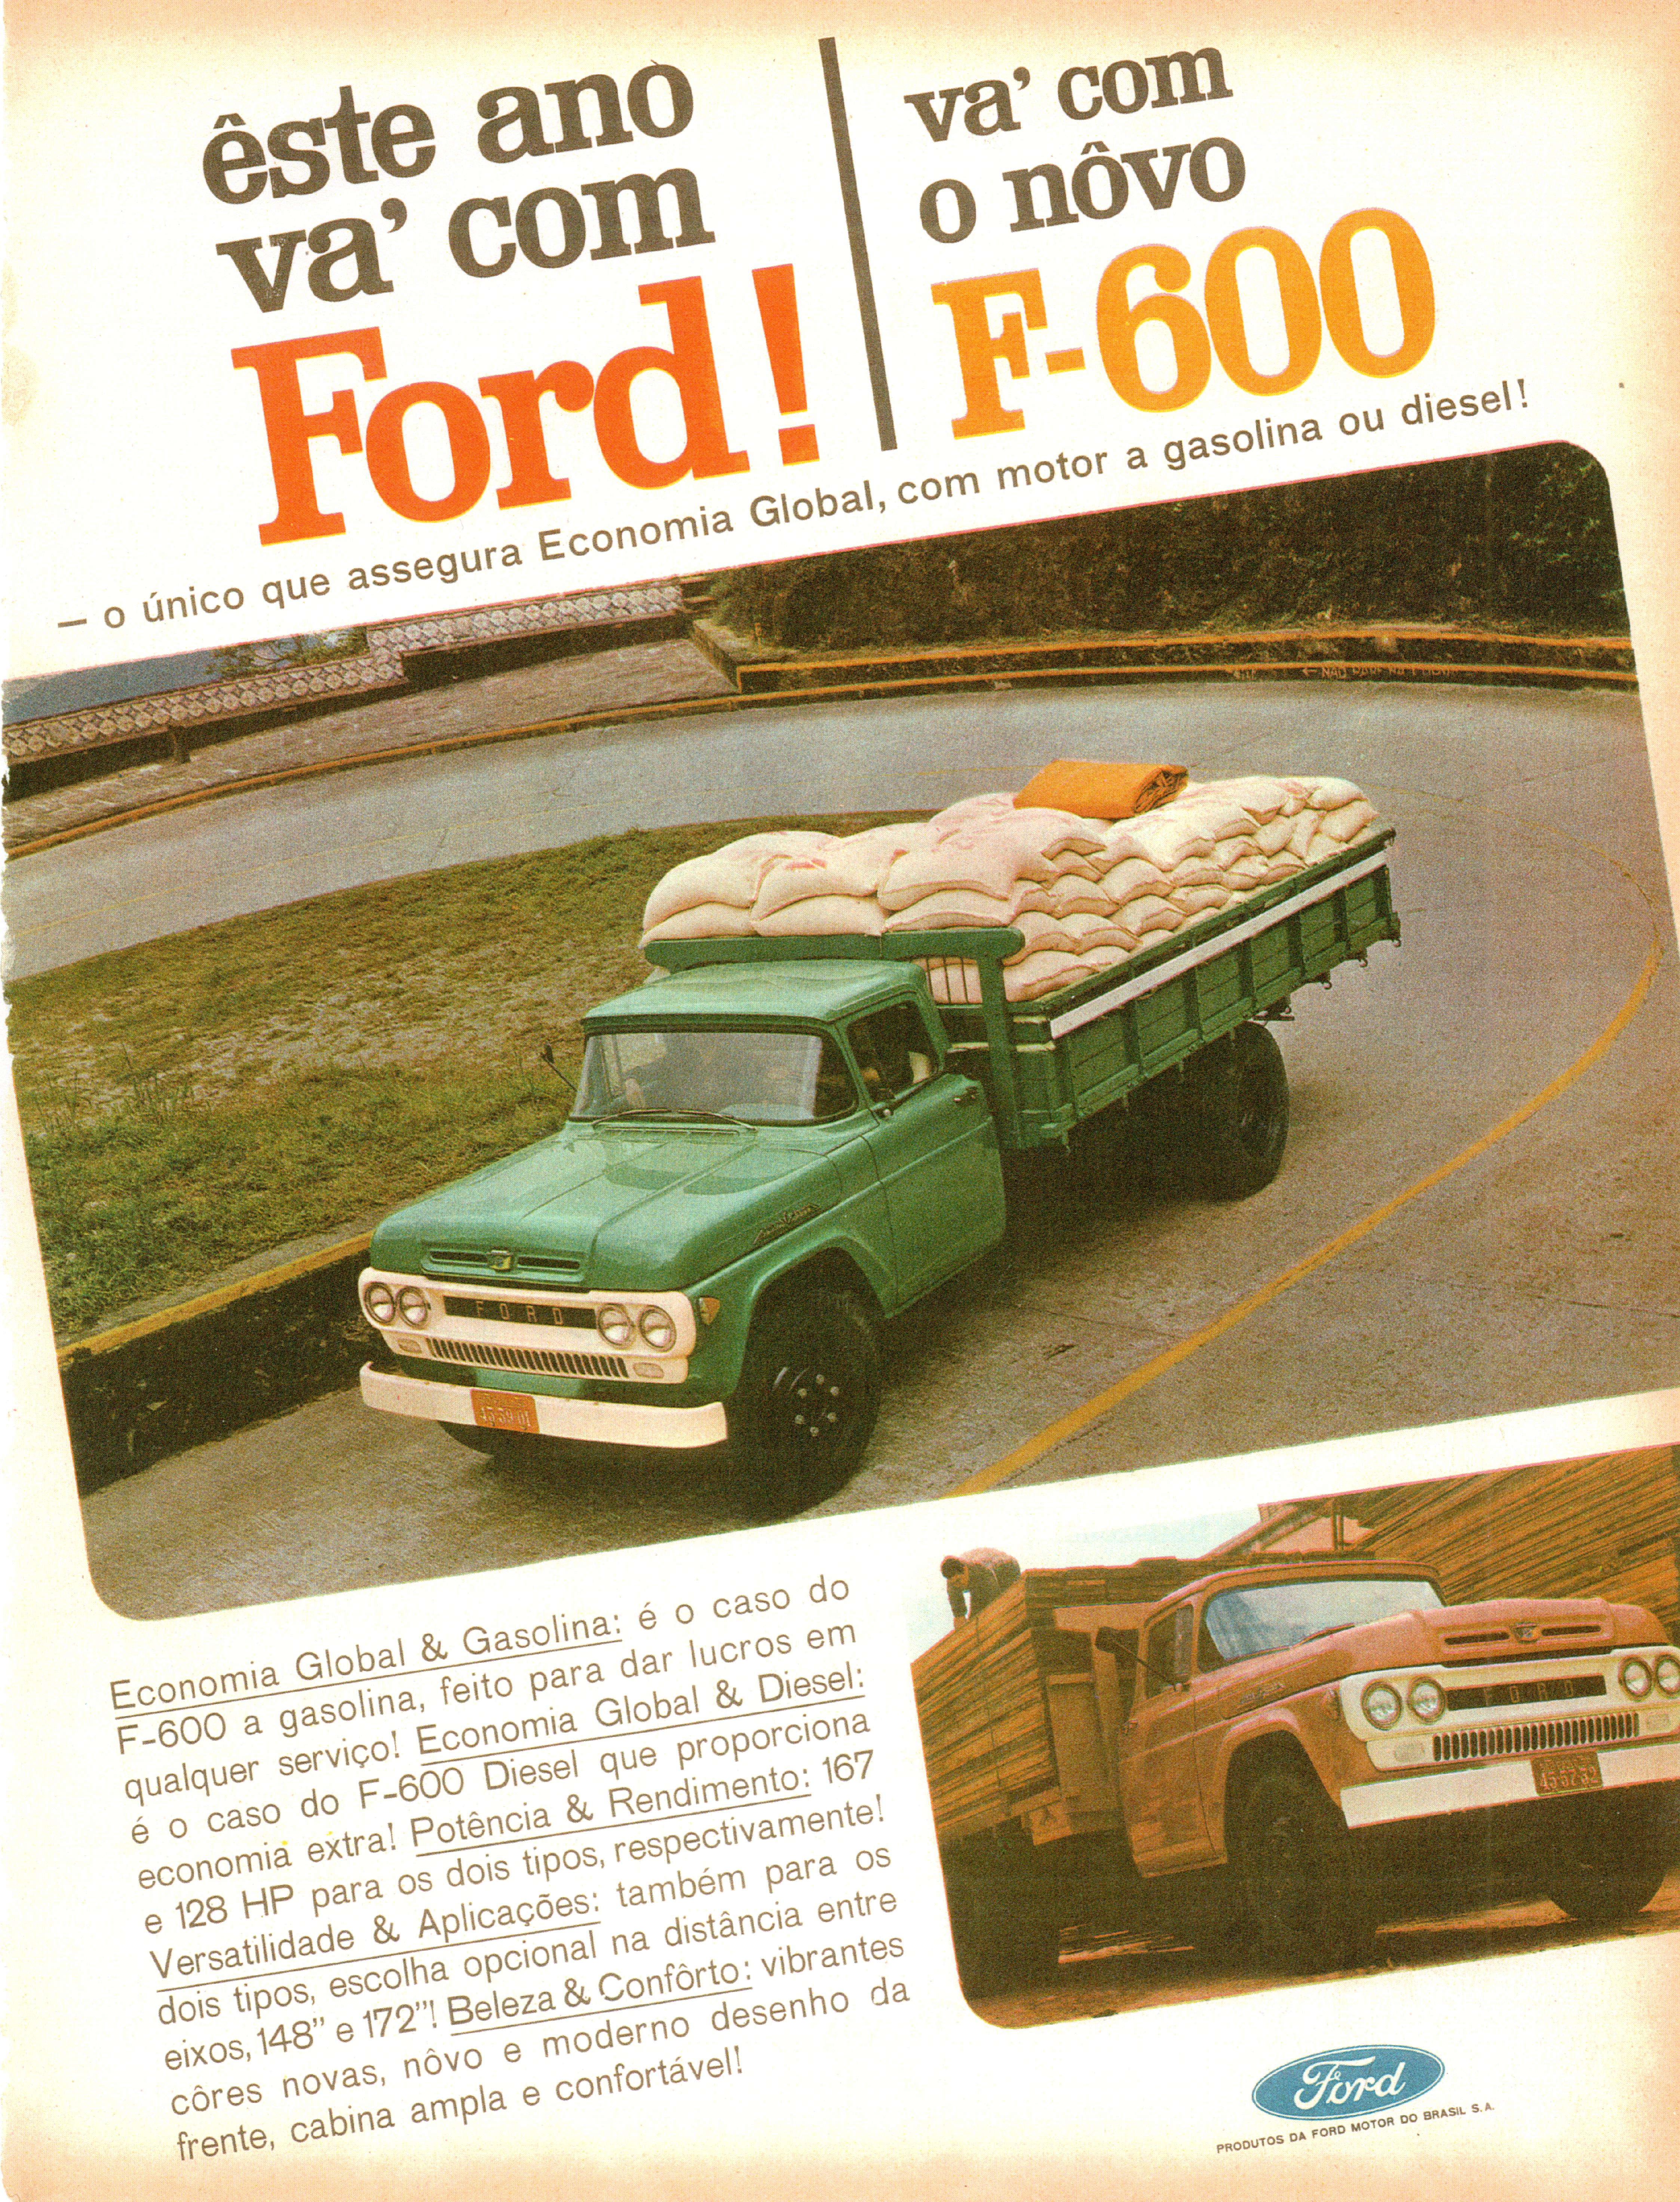 1965 Ford F-600 (Brazil) | Flickr - Photo Sharing!